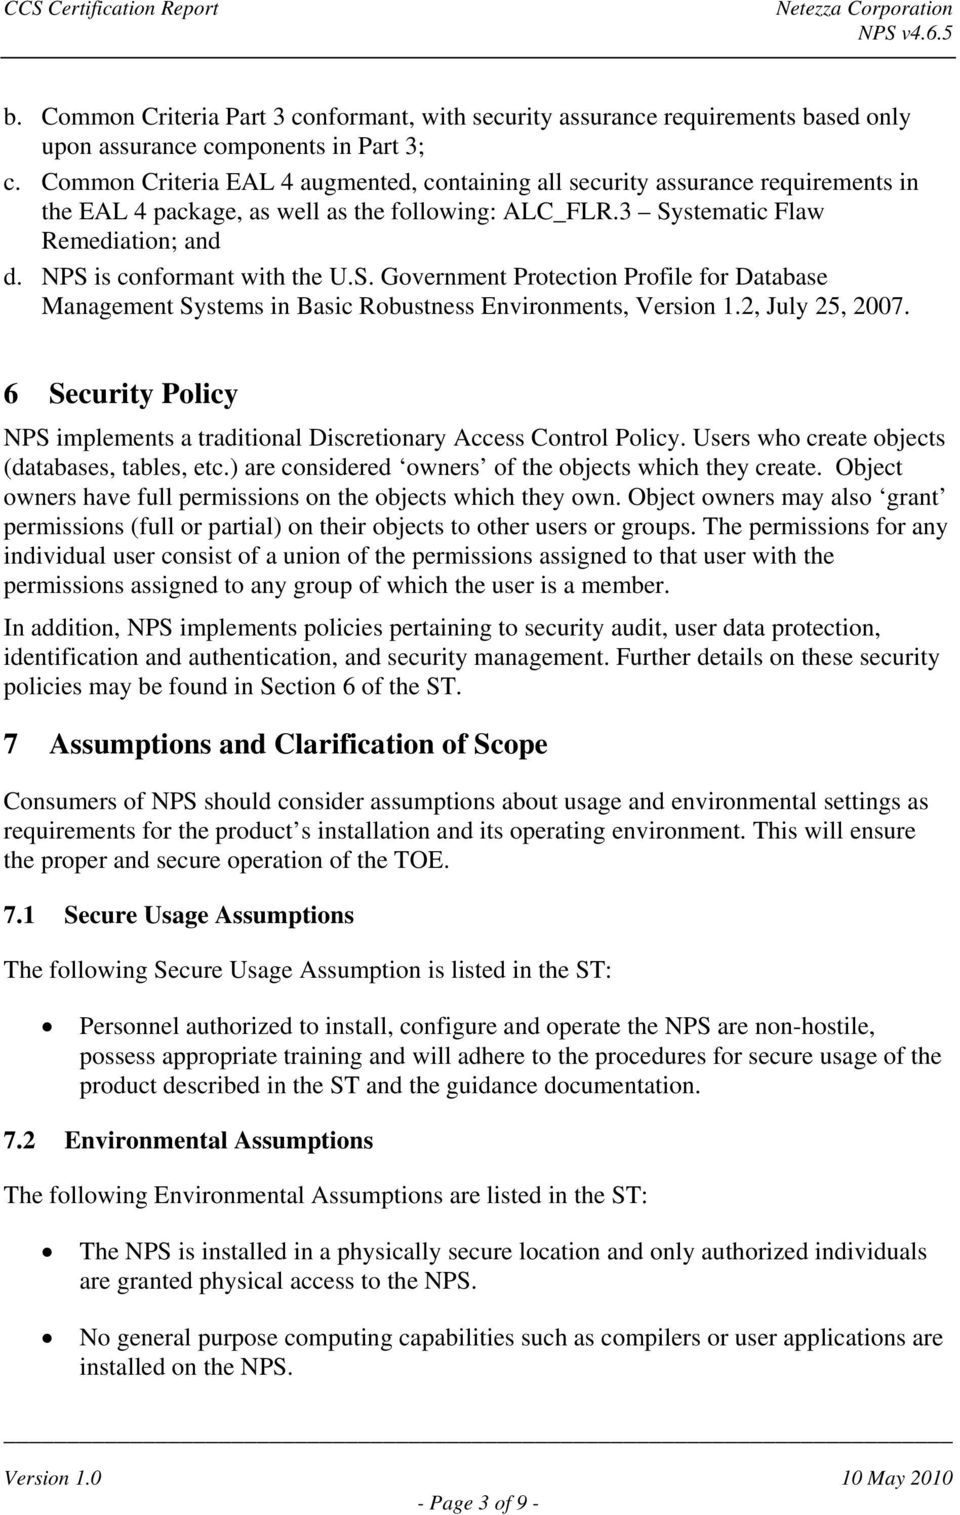 NPS is conformant with the U.S. Government Protection Profile for Database Management Systems in Basic Robustness Environments, Version 1.2, July 25, 2007.